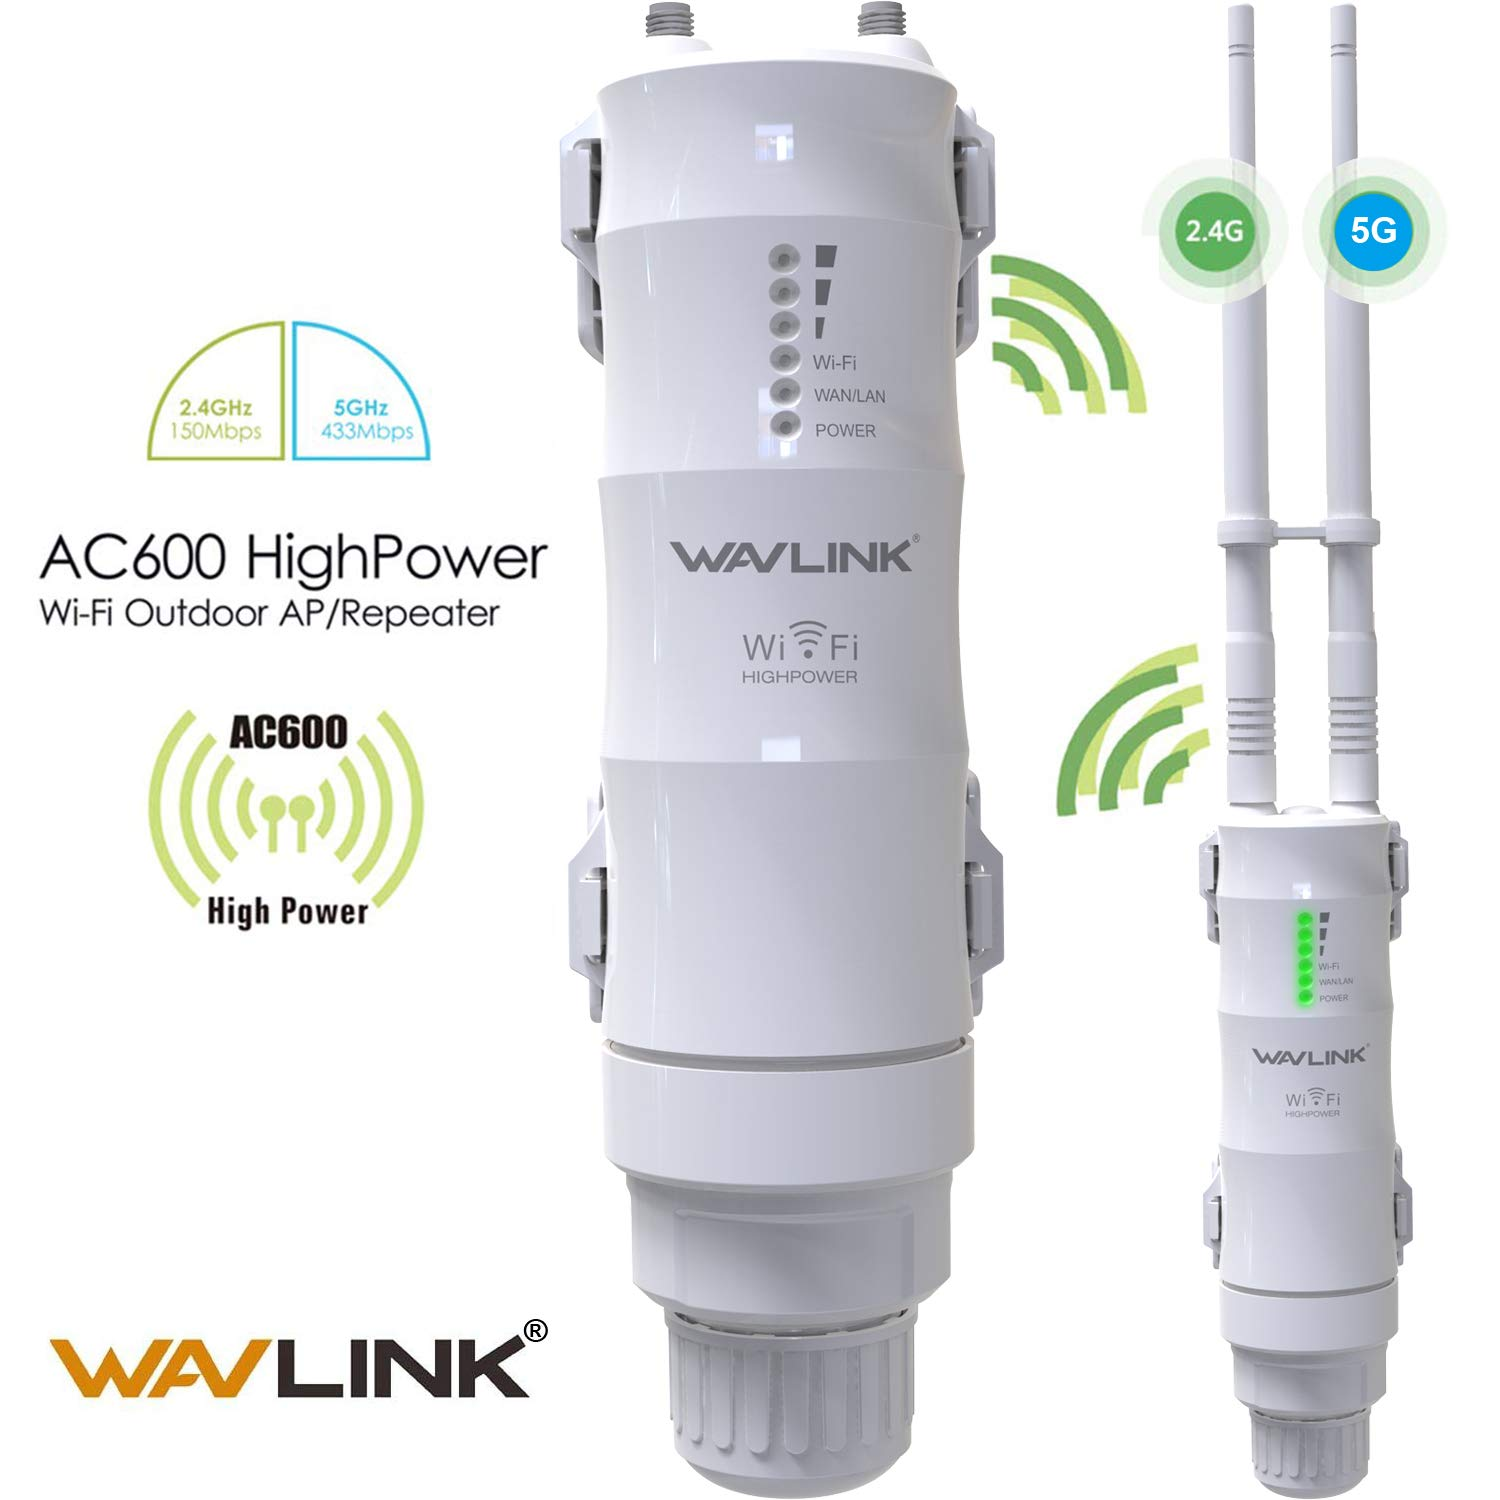 [Upgrade Version] WAVLINK-WN570HA1-AC600 Outdoor 3 in 1 Dual Band 2.4+5G 600Mbps Wireless Access Point (AP)/ Router/WiFi Extender Range Repeater Internet Signal Booster Amplifier in PoE & 2 Antennas by WAVLINK